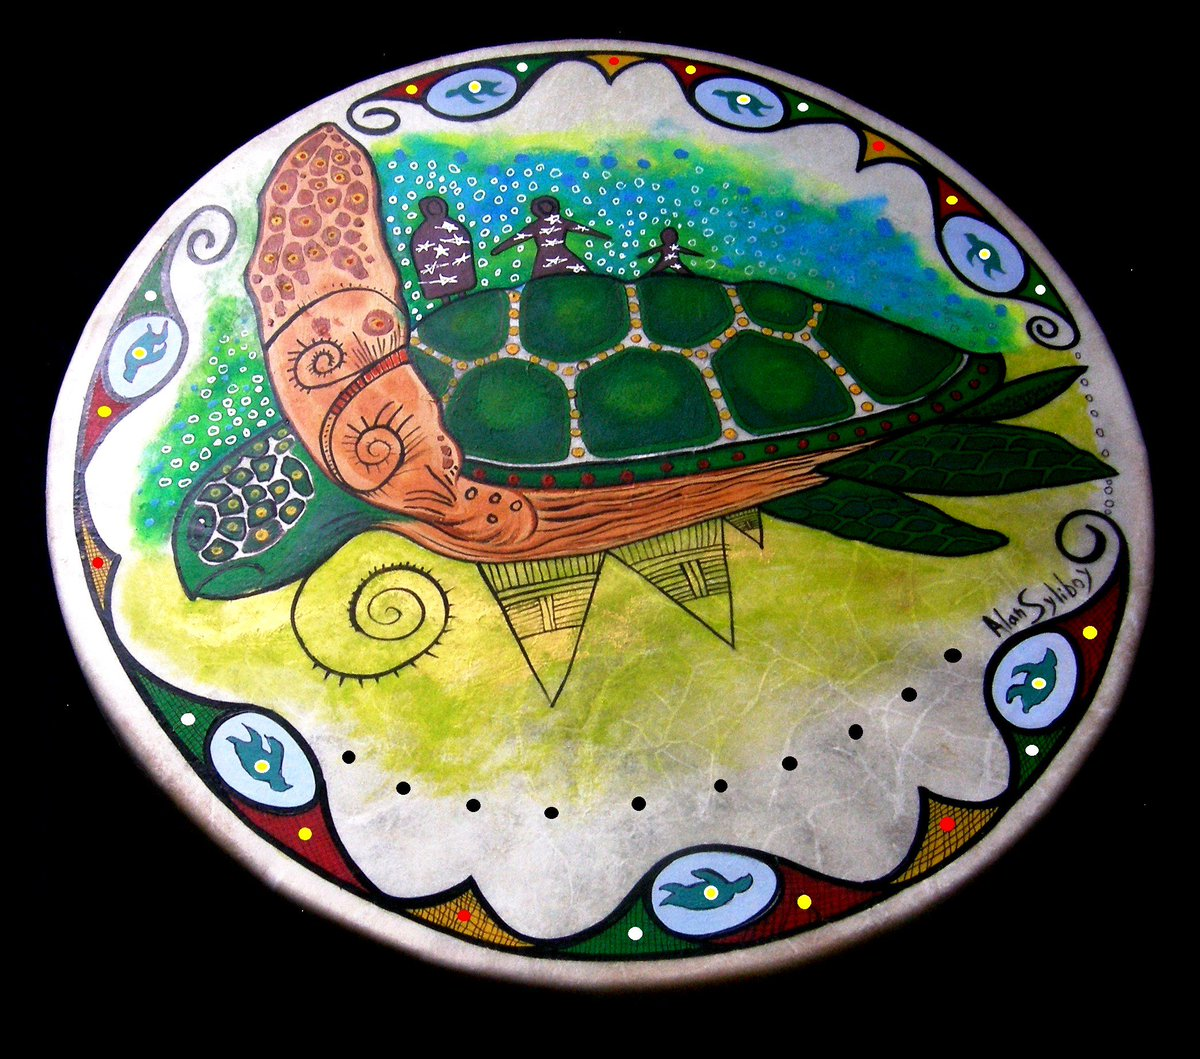 Alan Syliboy On Twitter The Daily Drum We Close Out The Week With